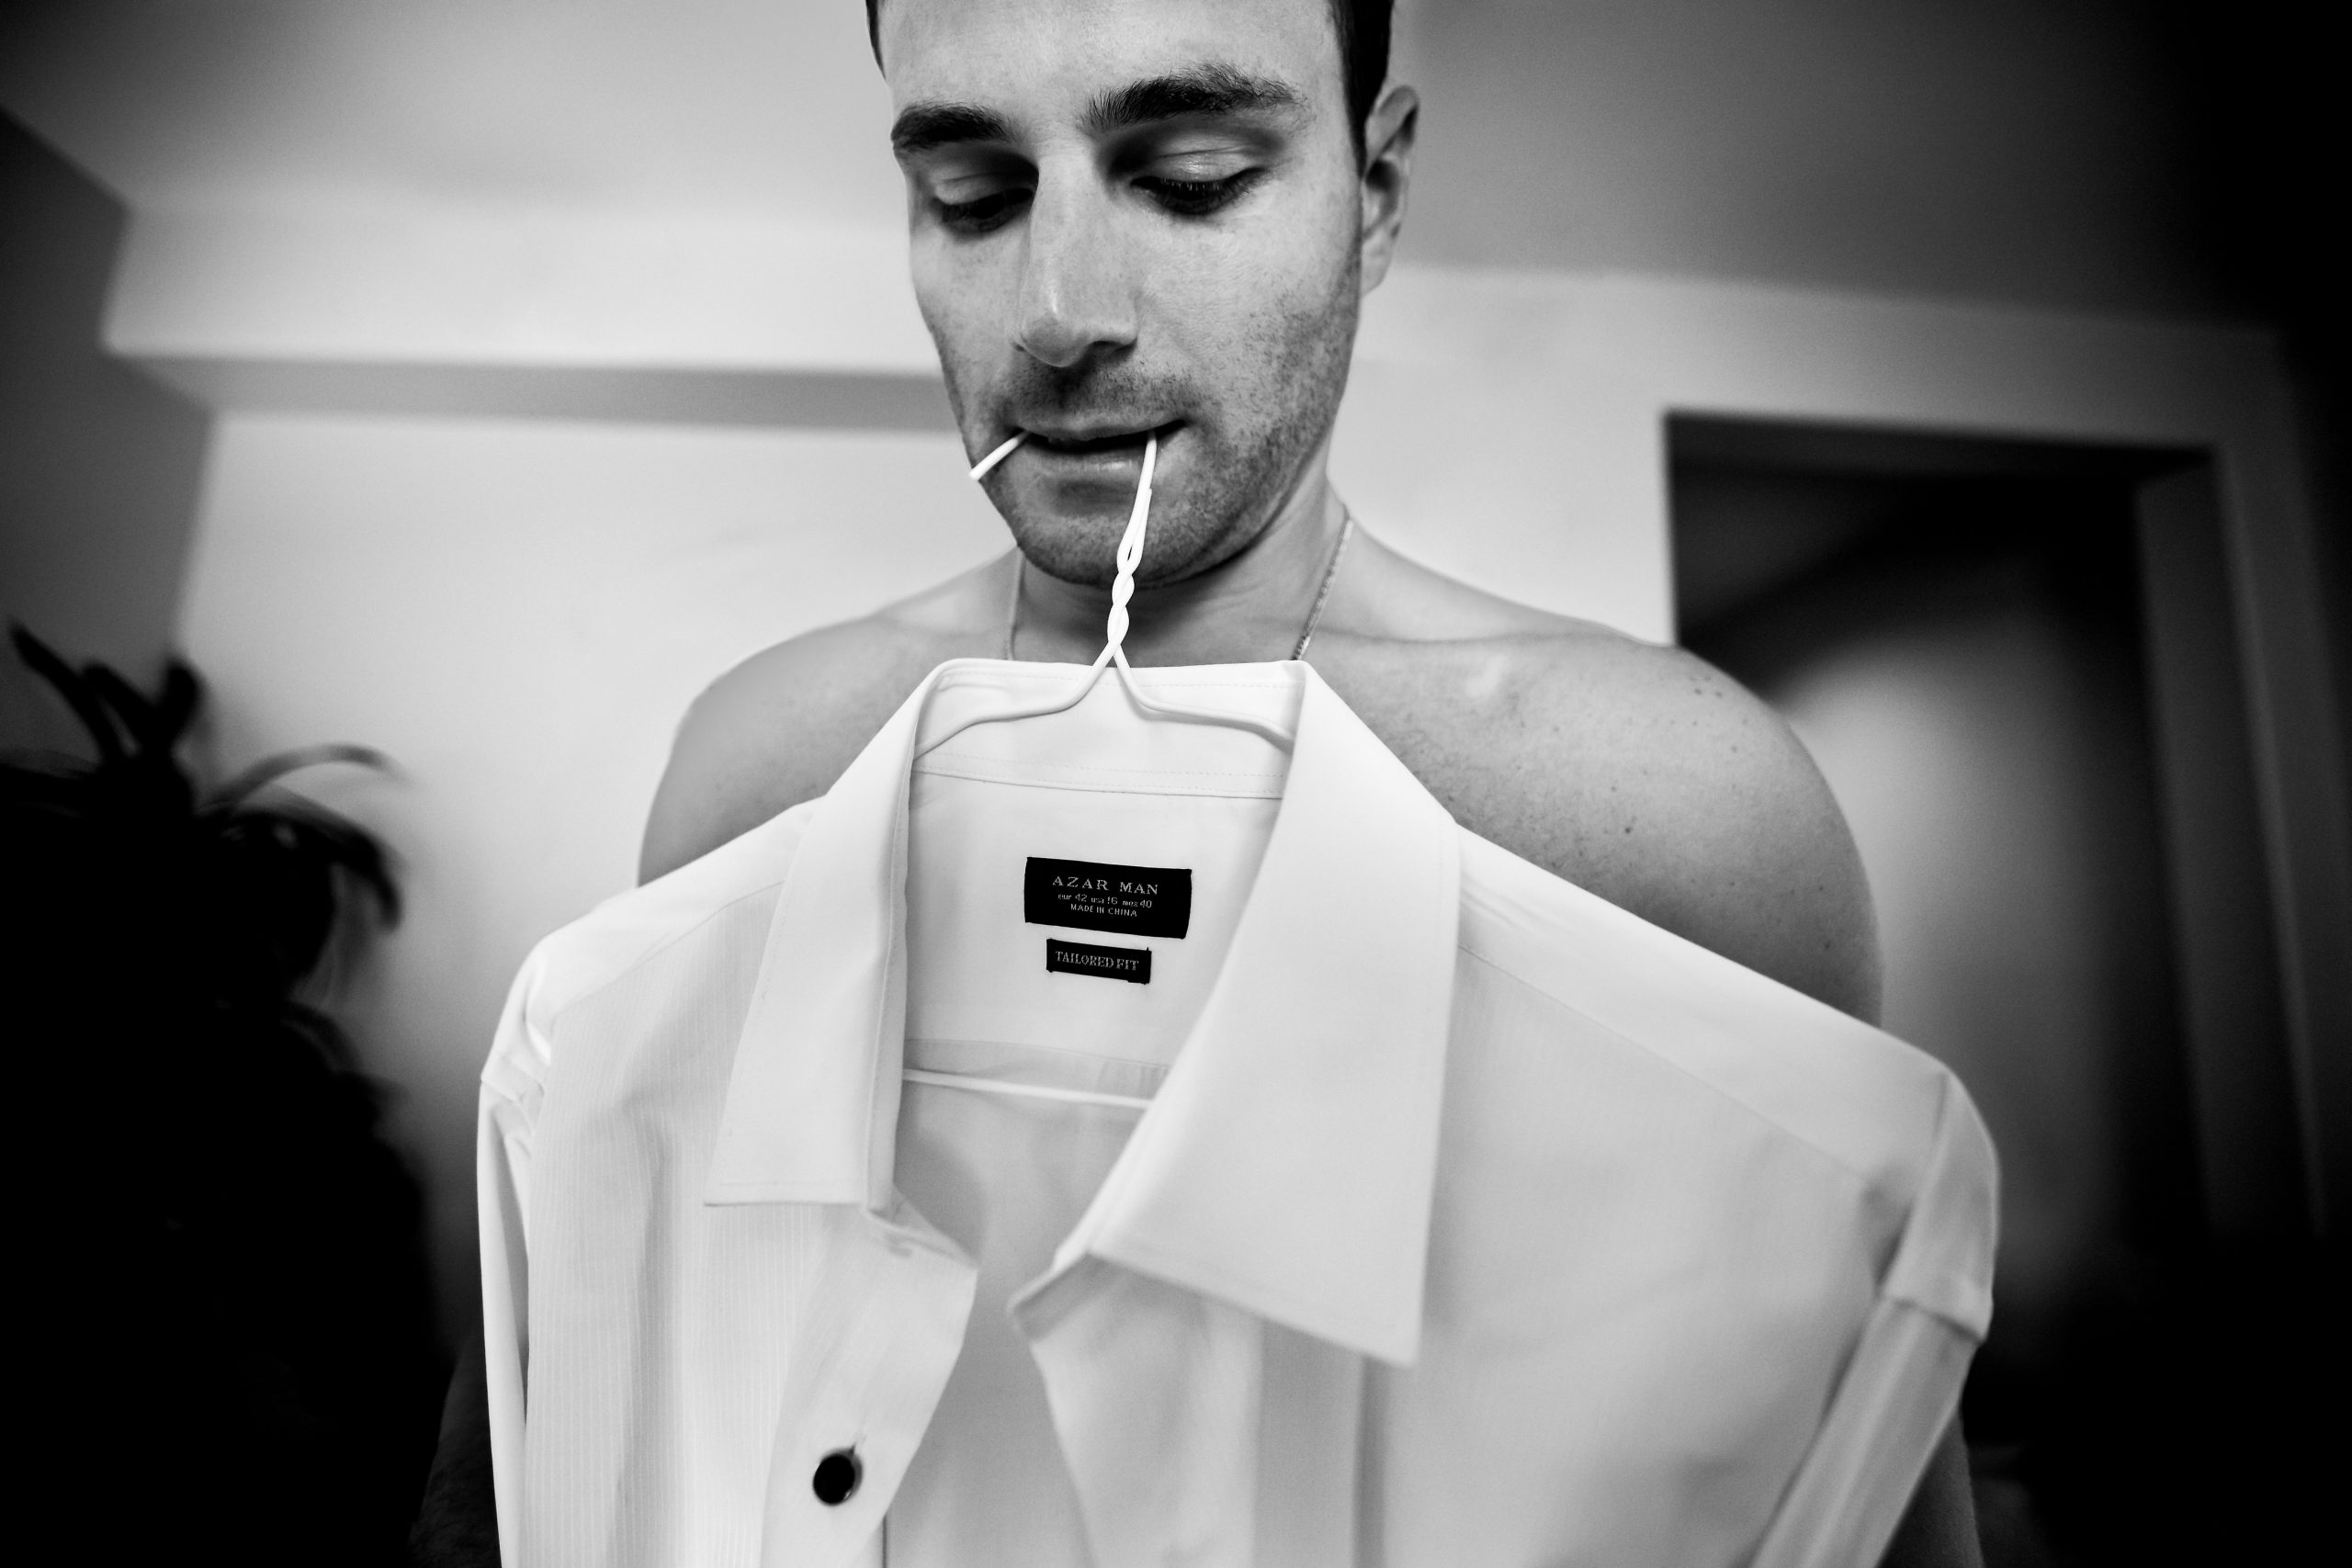 Man holds clothe hanger with a dress shirt in his mouth